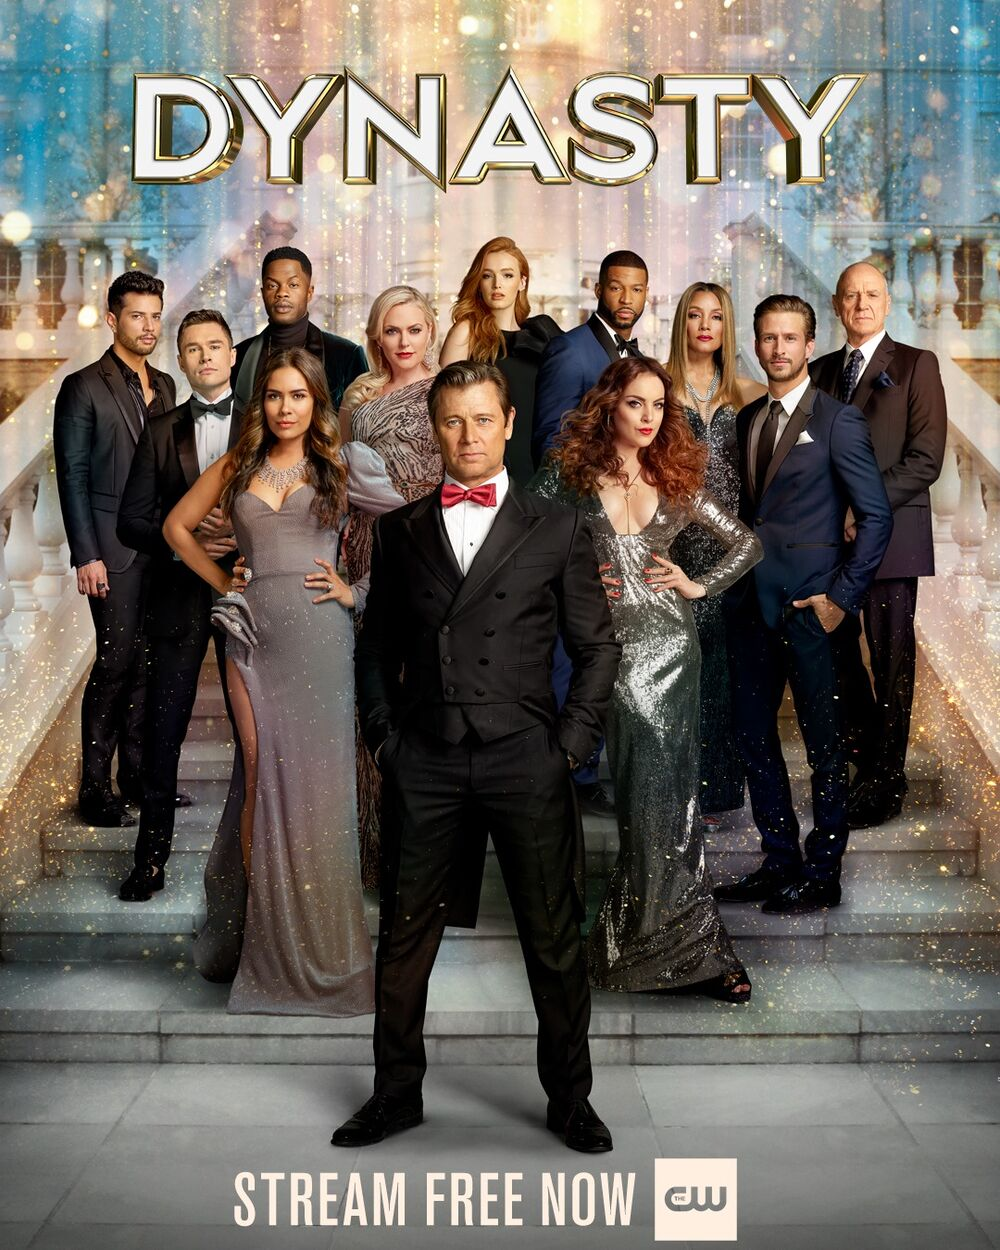 Point Classics track placed in TV series 'Dynasty' for the second time